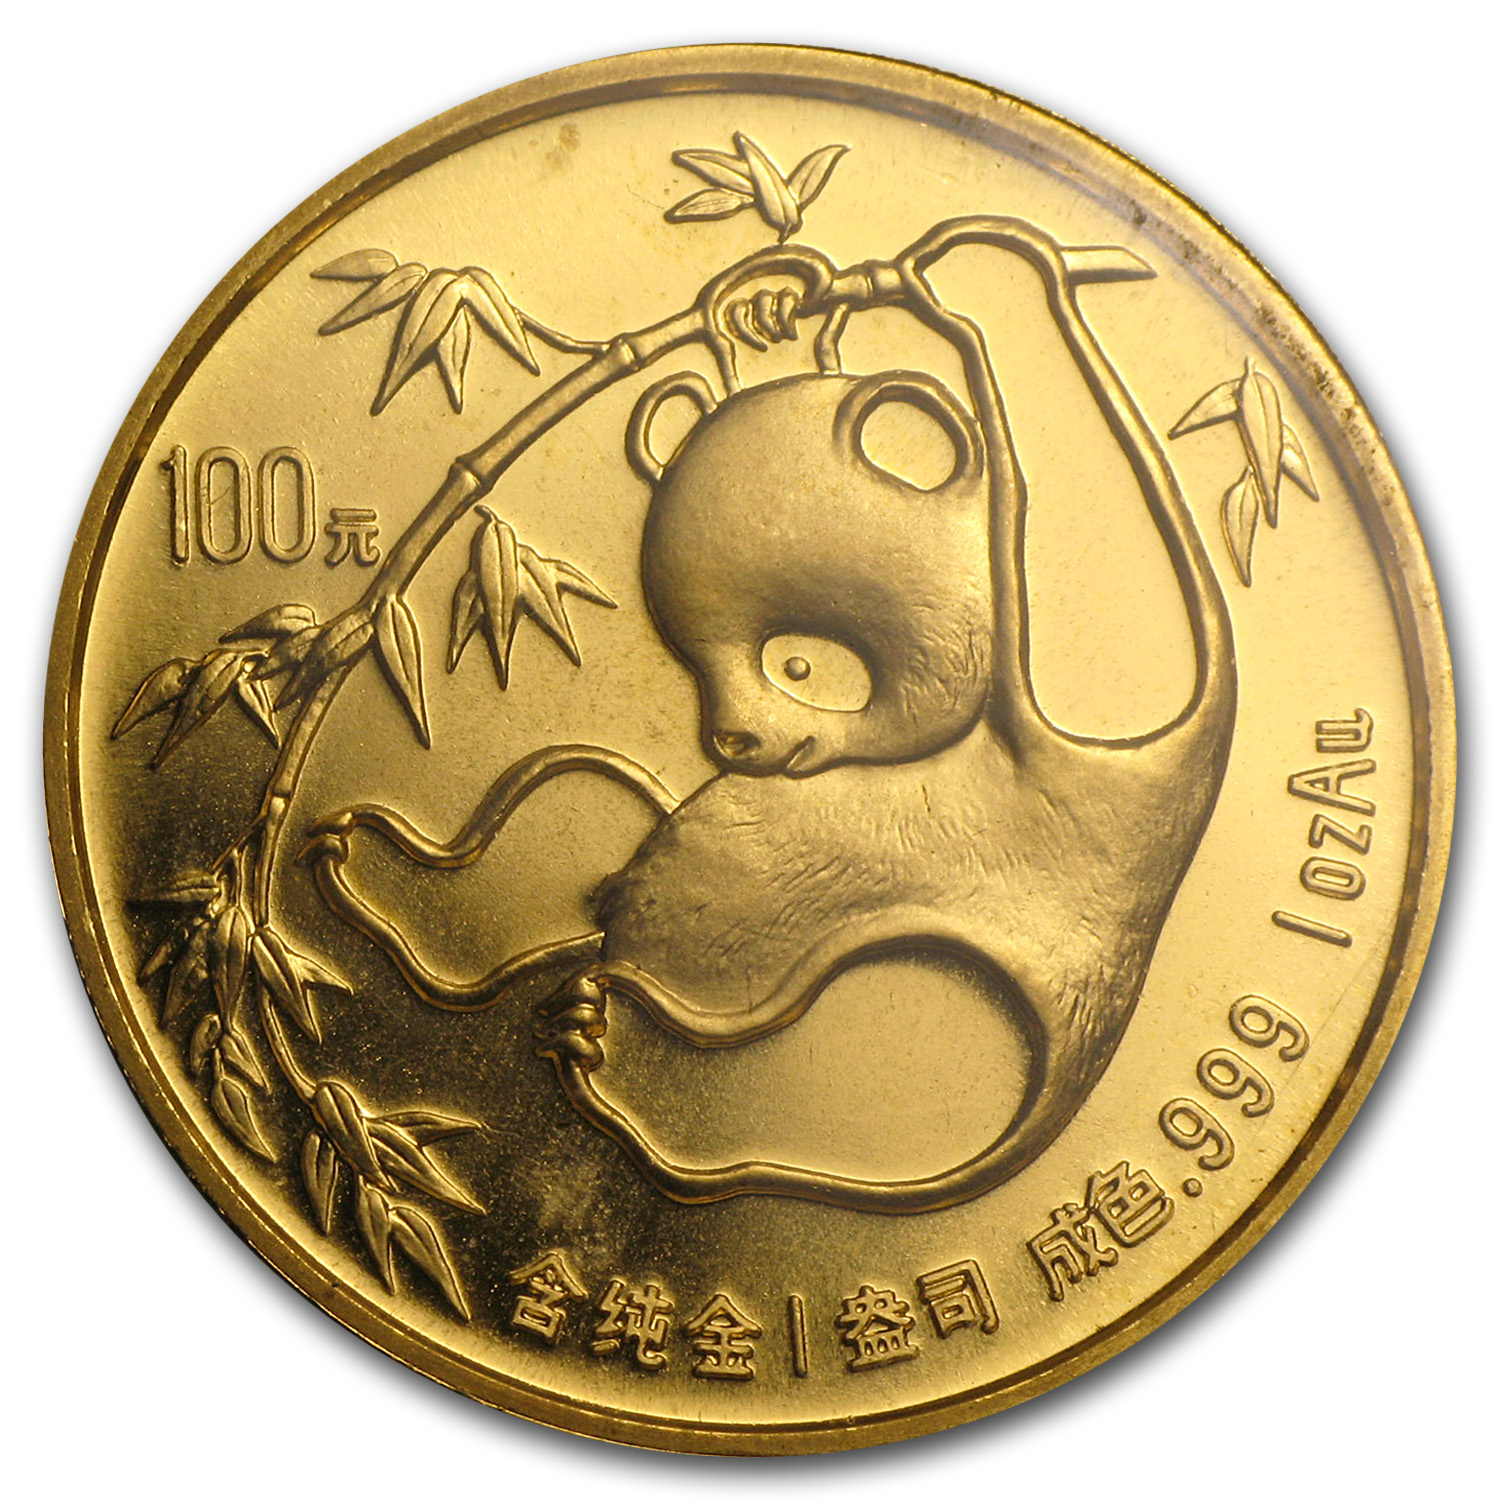 1985 China 1 oz Gold Panda BU (Sealed)